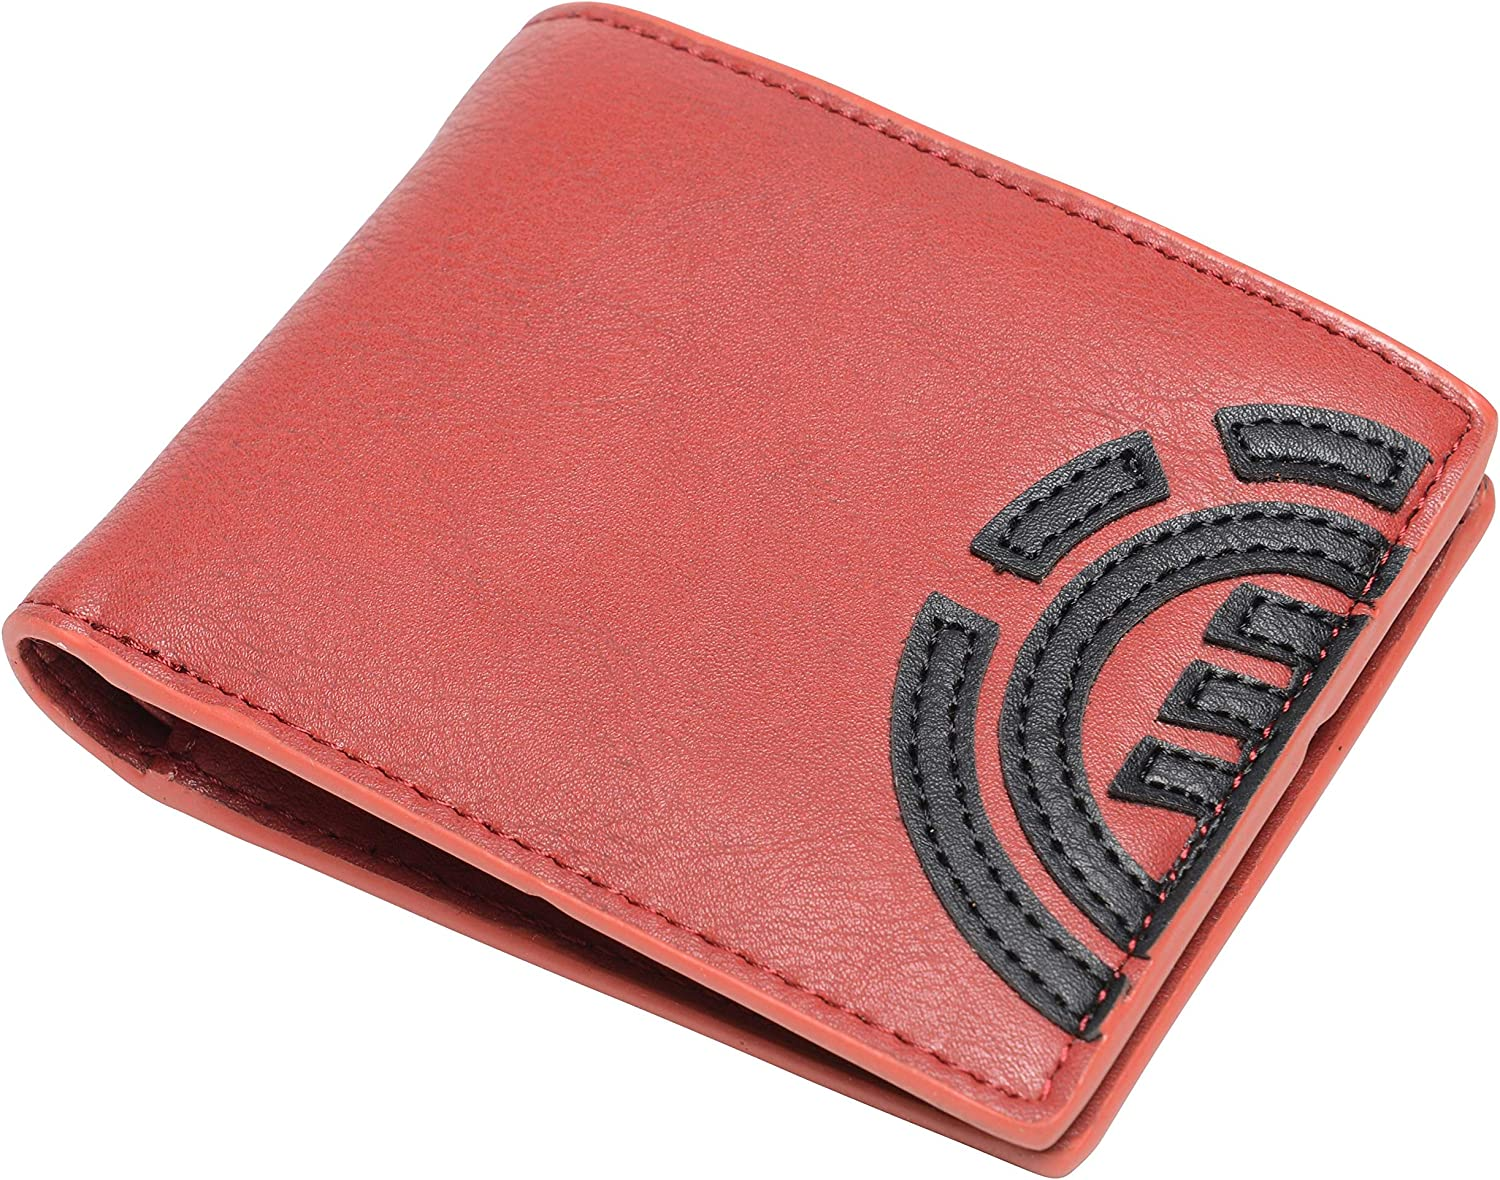 Note and Coin Pockets ~ Daily red dahlia Element Wallet with CC